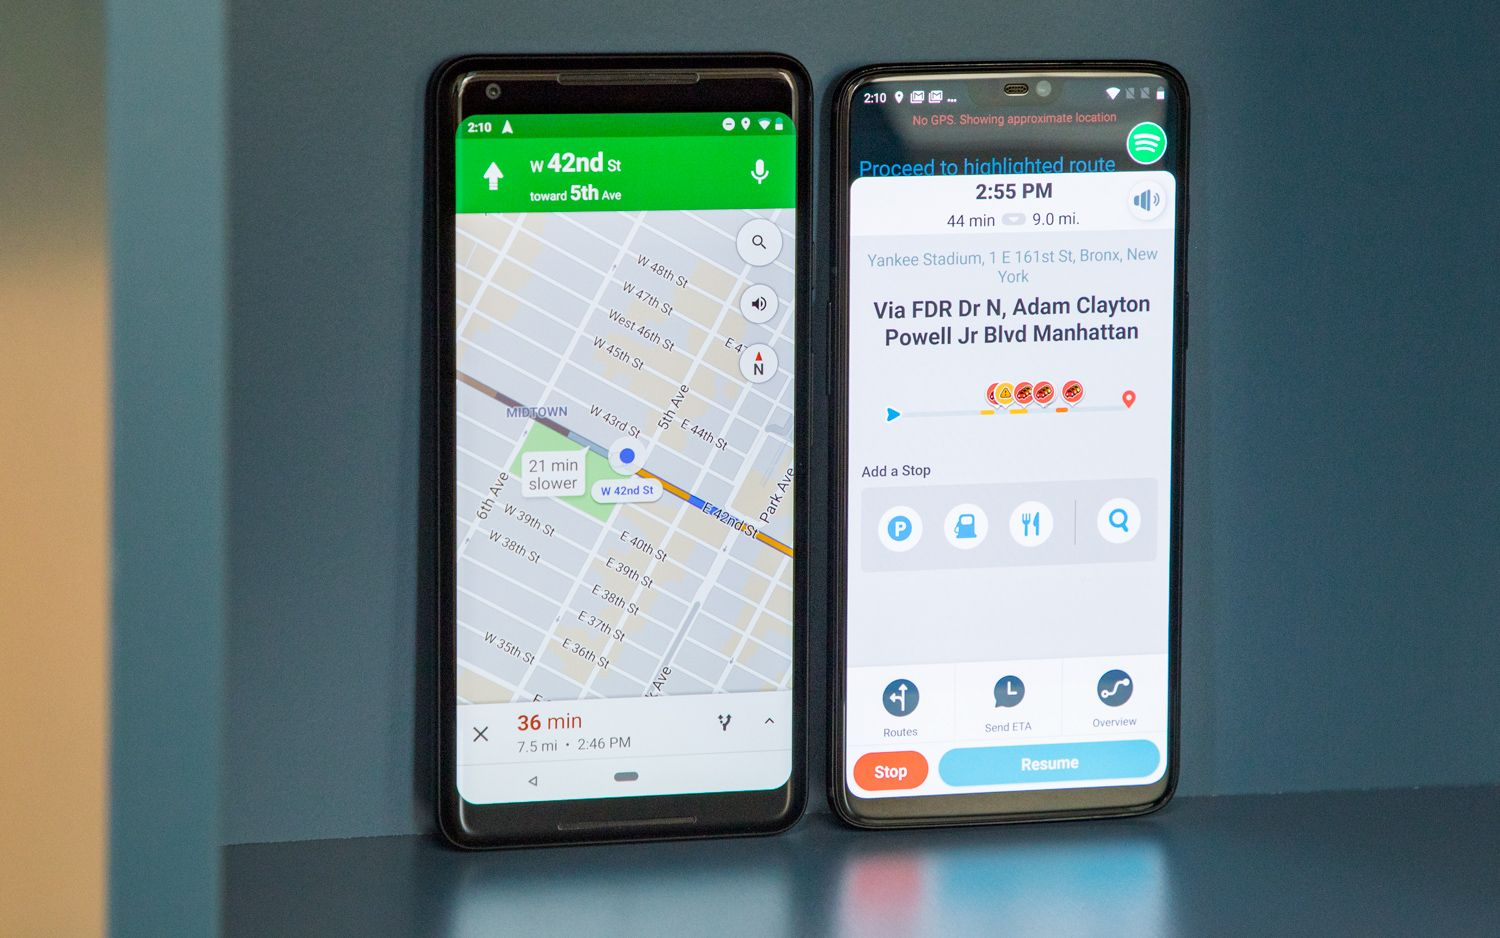 Google Maps vs Waze: Which Is Better for You? | Smartphones ... on android app for pc, ibooks app for pc, imessage app for pc, garageband app for pc, amazon instant app for pc, whatsapp app for pc, facebook app for pc,